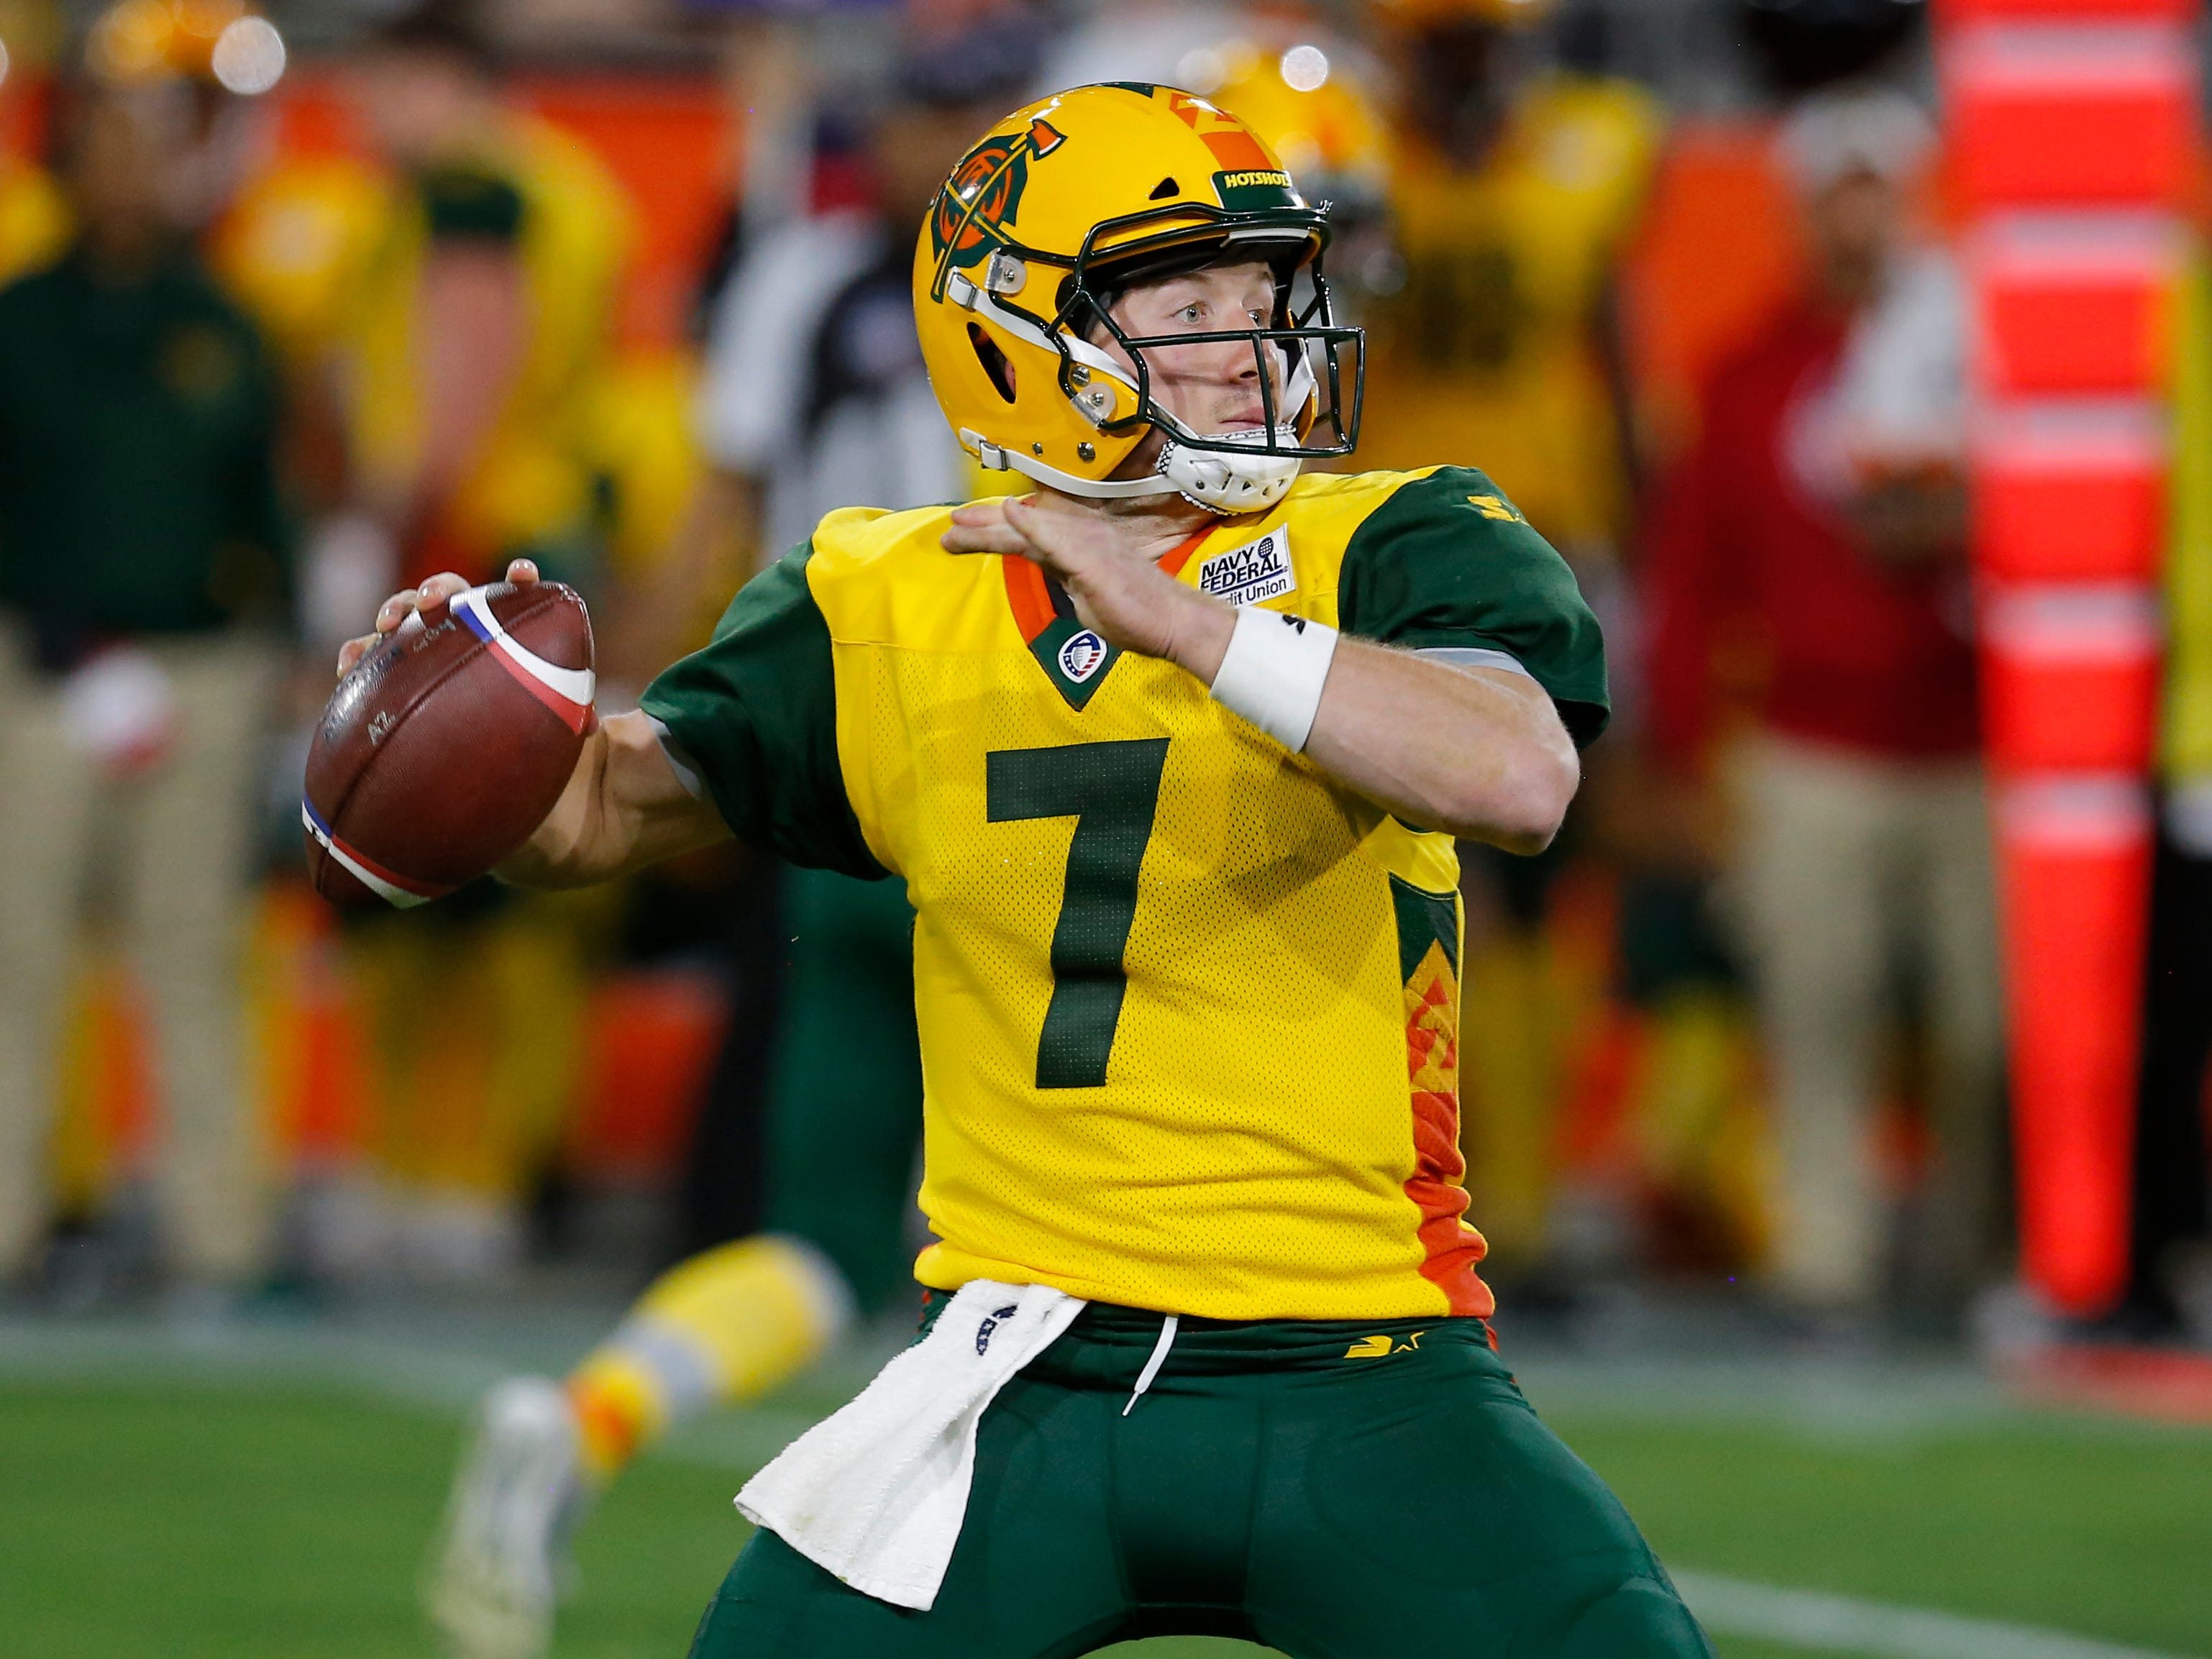 Arizona Hotshots quarterback John Wolford (7) throws downfield against the Atlanta Legends in the second half during an AAF football game, Sunday, March 3, 2019, at Sun Devil Stadium in Phoenix.